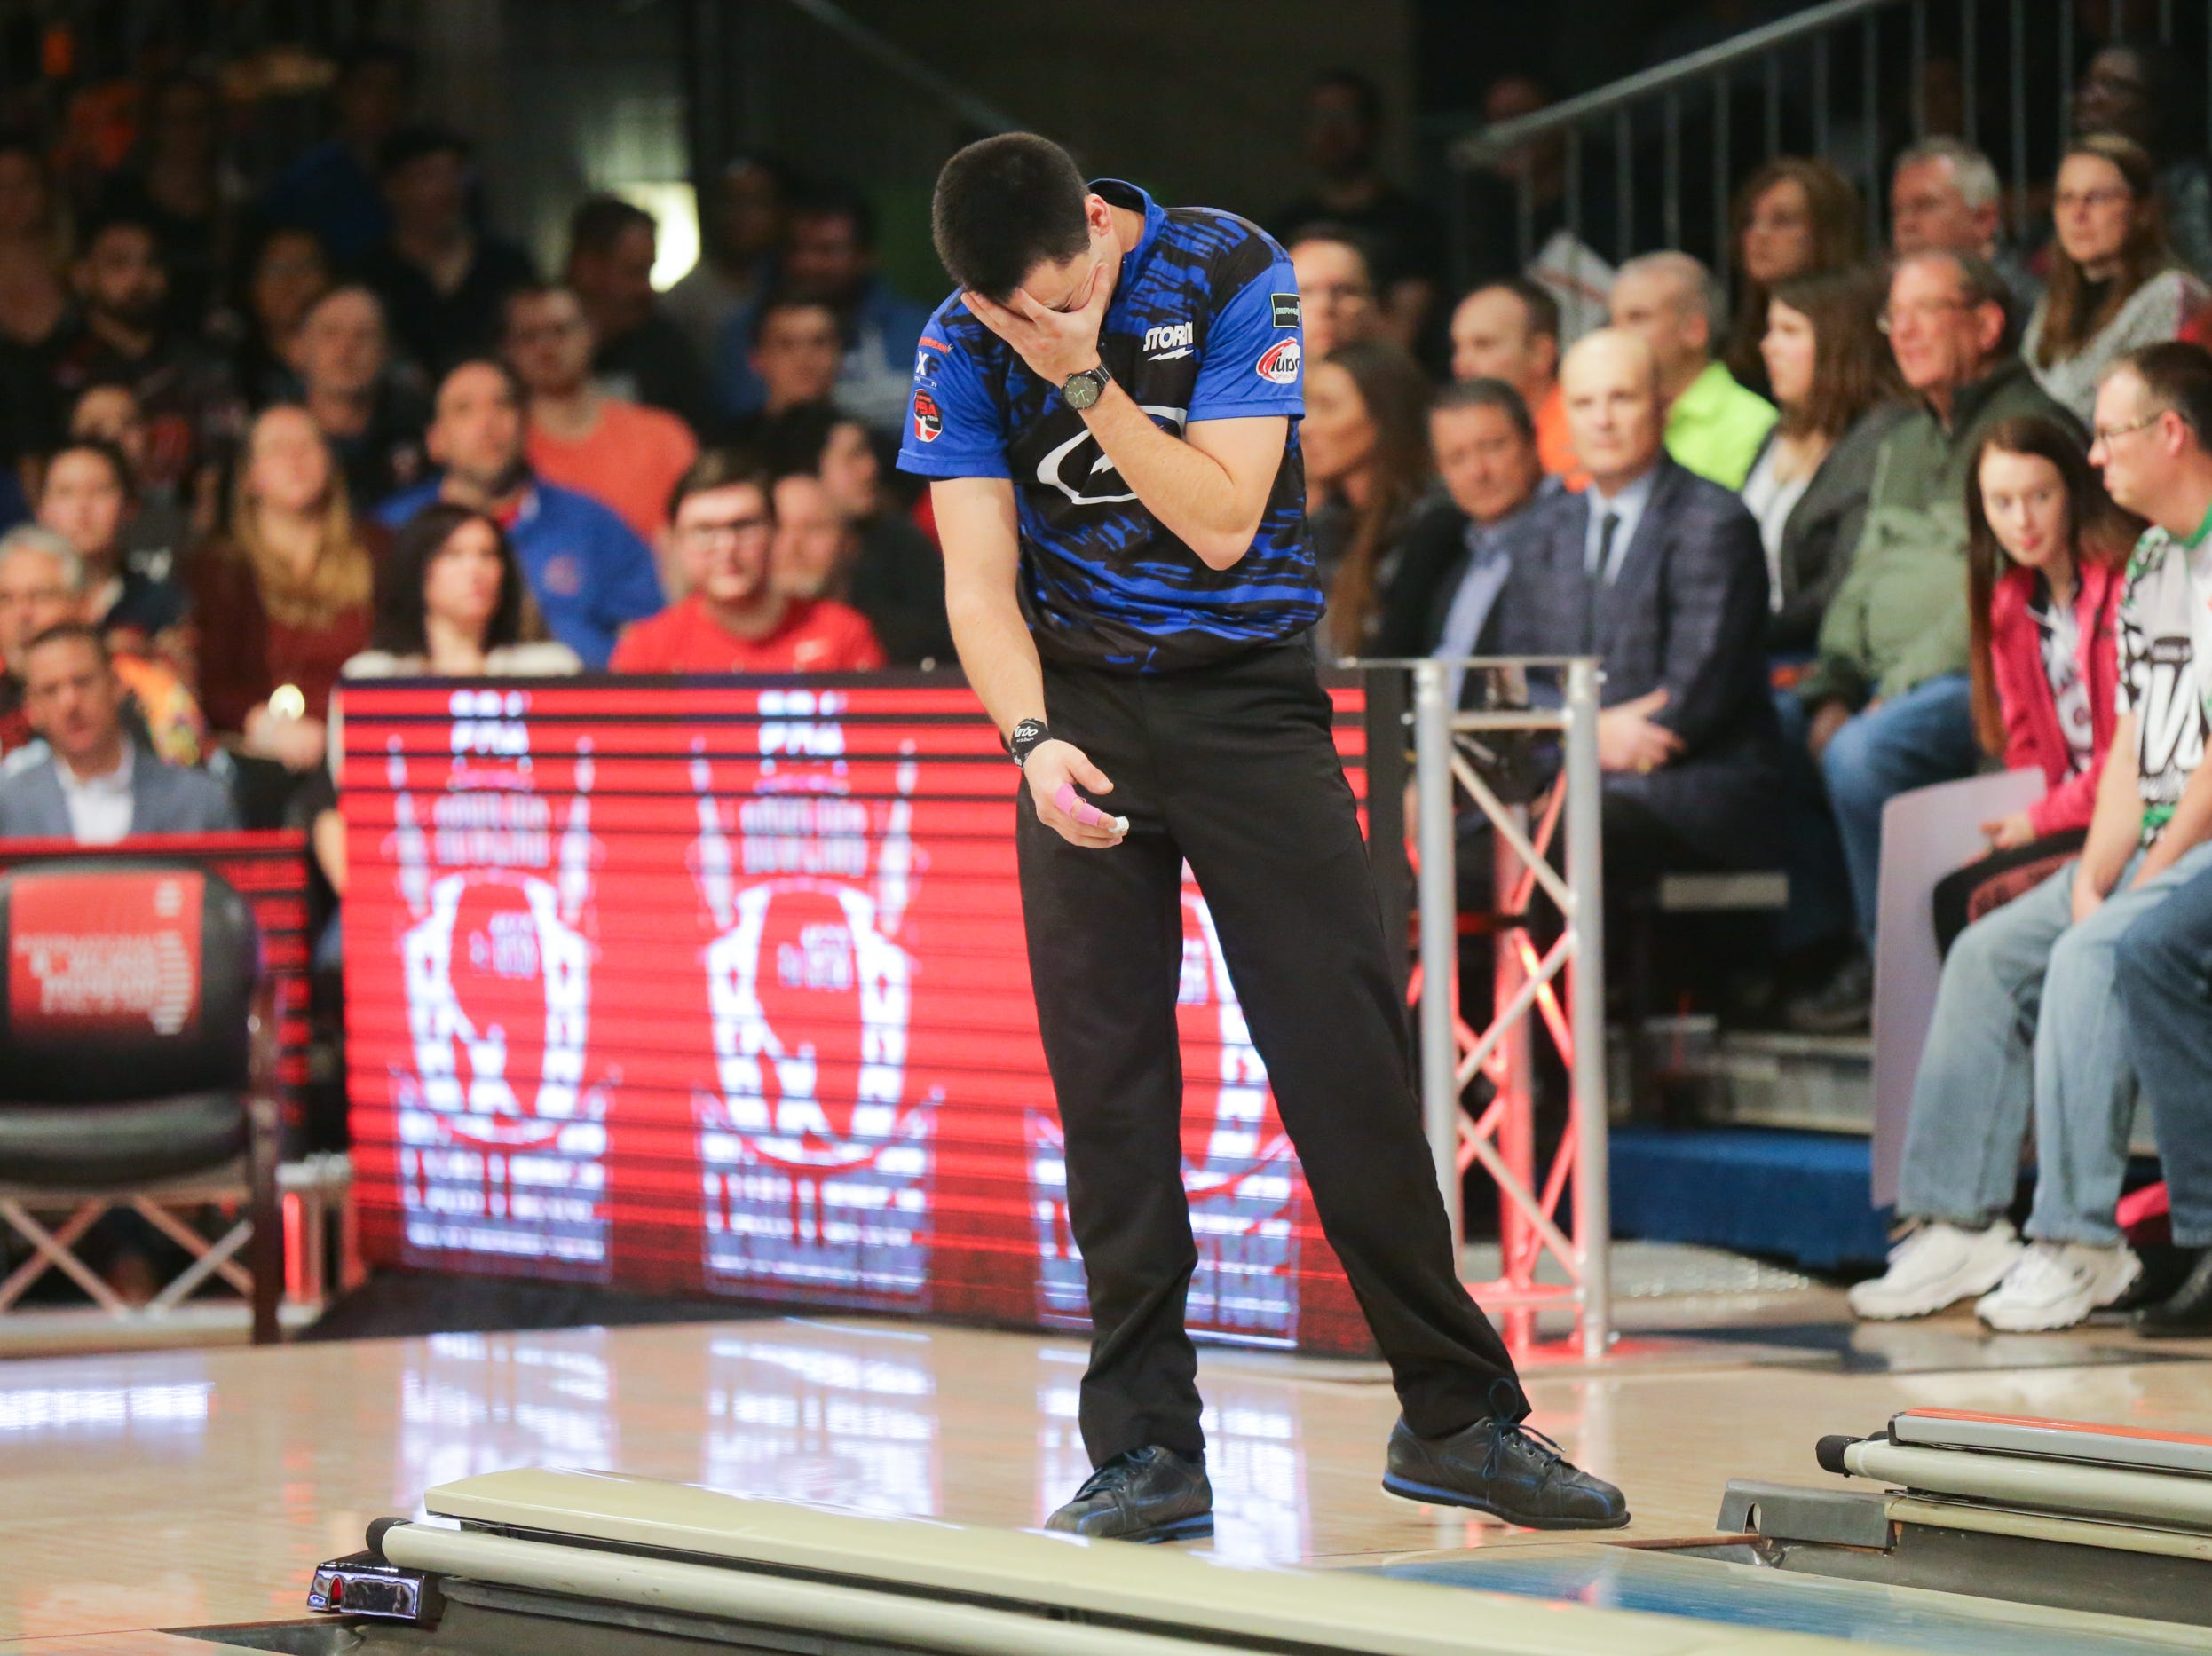 Marshall Kent reacts to his throw while bowling against Jakob Butturff during the PBA 60th Anniversary Classic held at Woodland Bowl in Indianapolis on Sunday, Feb. 18, 2018. Jakob Butturff won the stepladder finals.